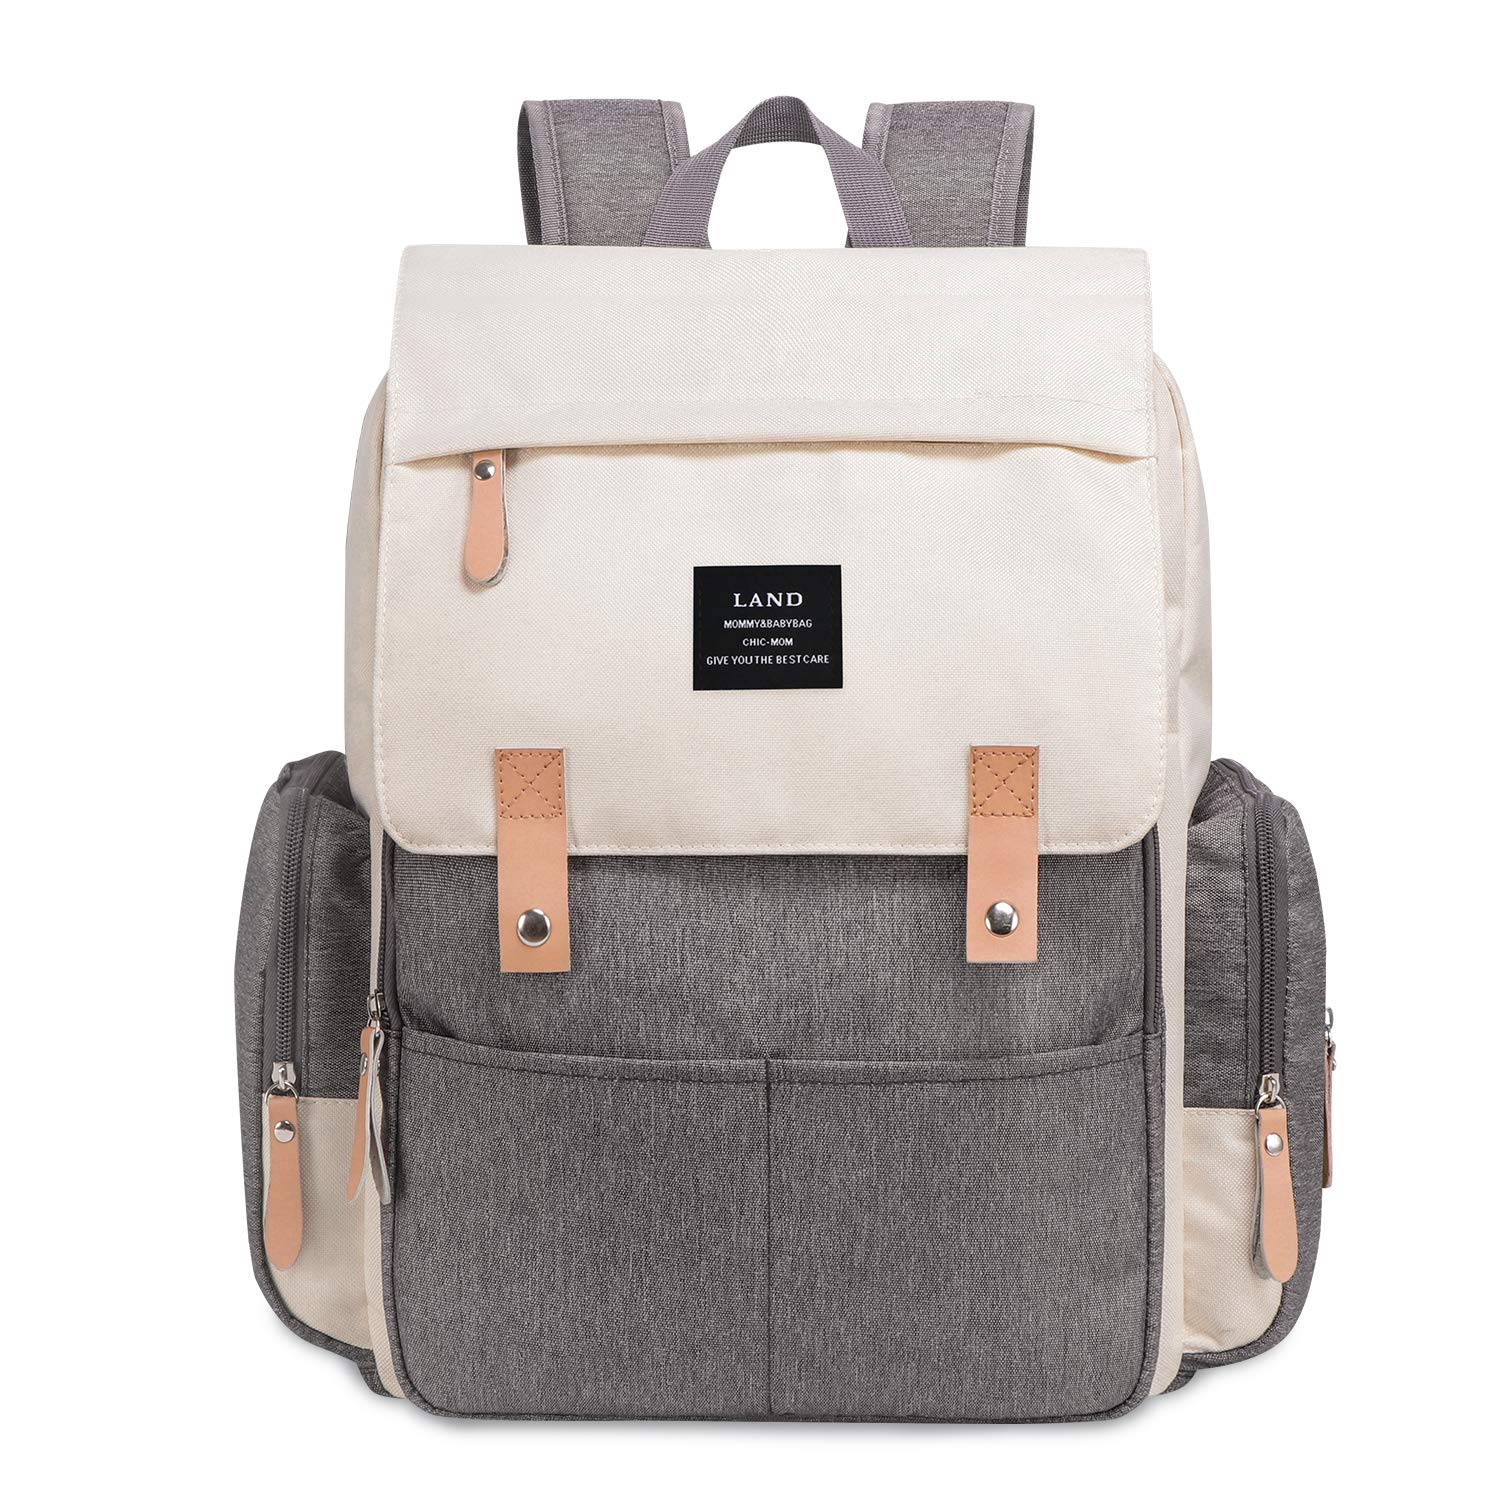 Diaper Bag Backpack Large Capacity for Baby Care Wide Open Design and Waterproof Fabric for Mom Dad (New White Grey)